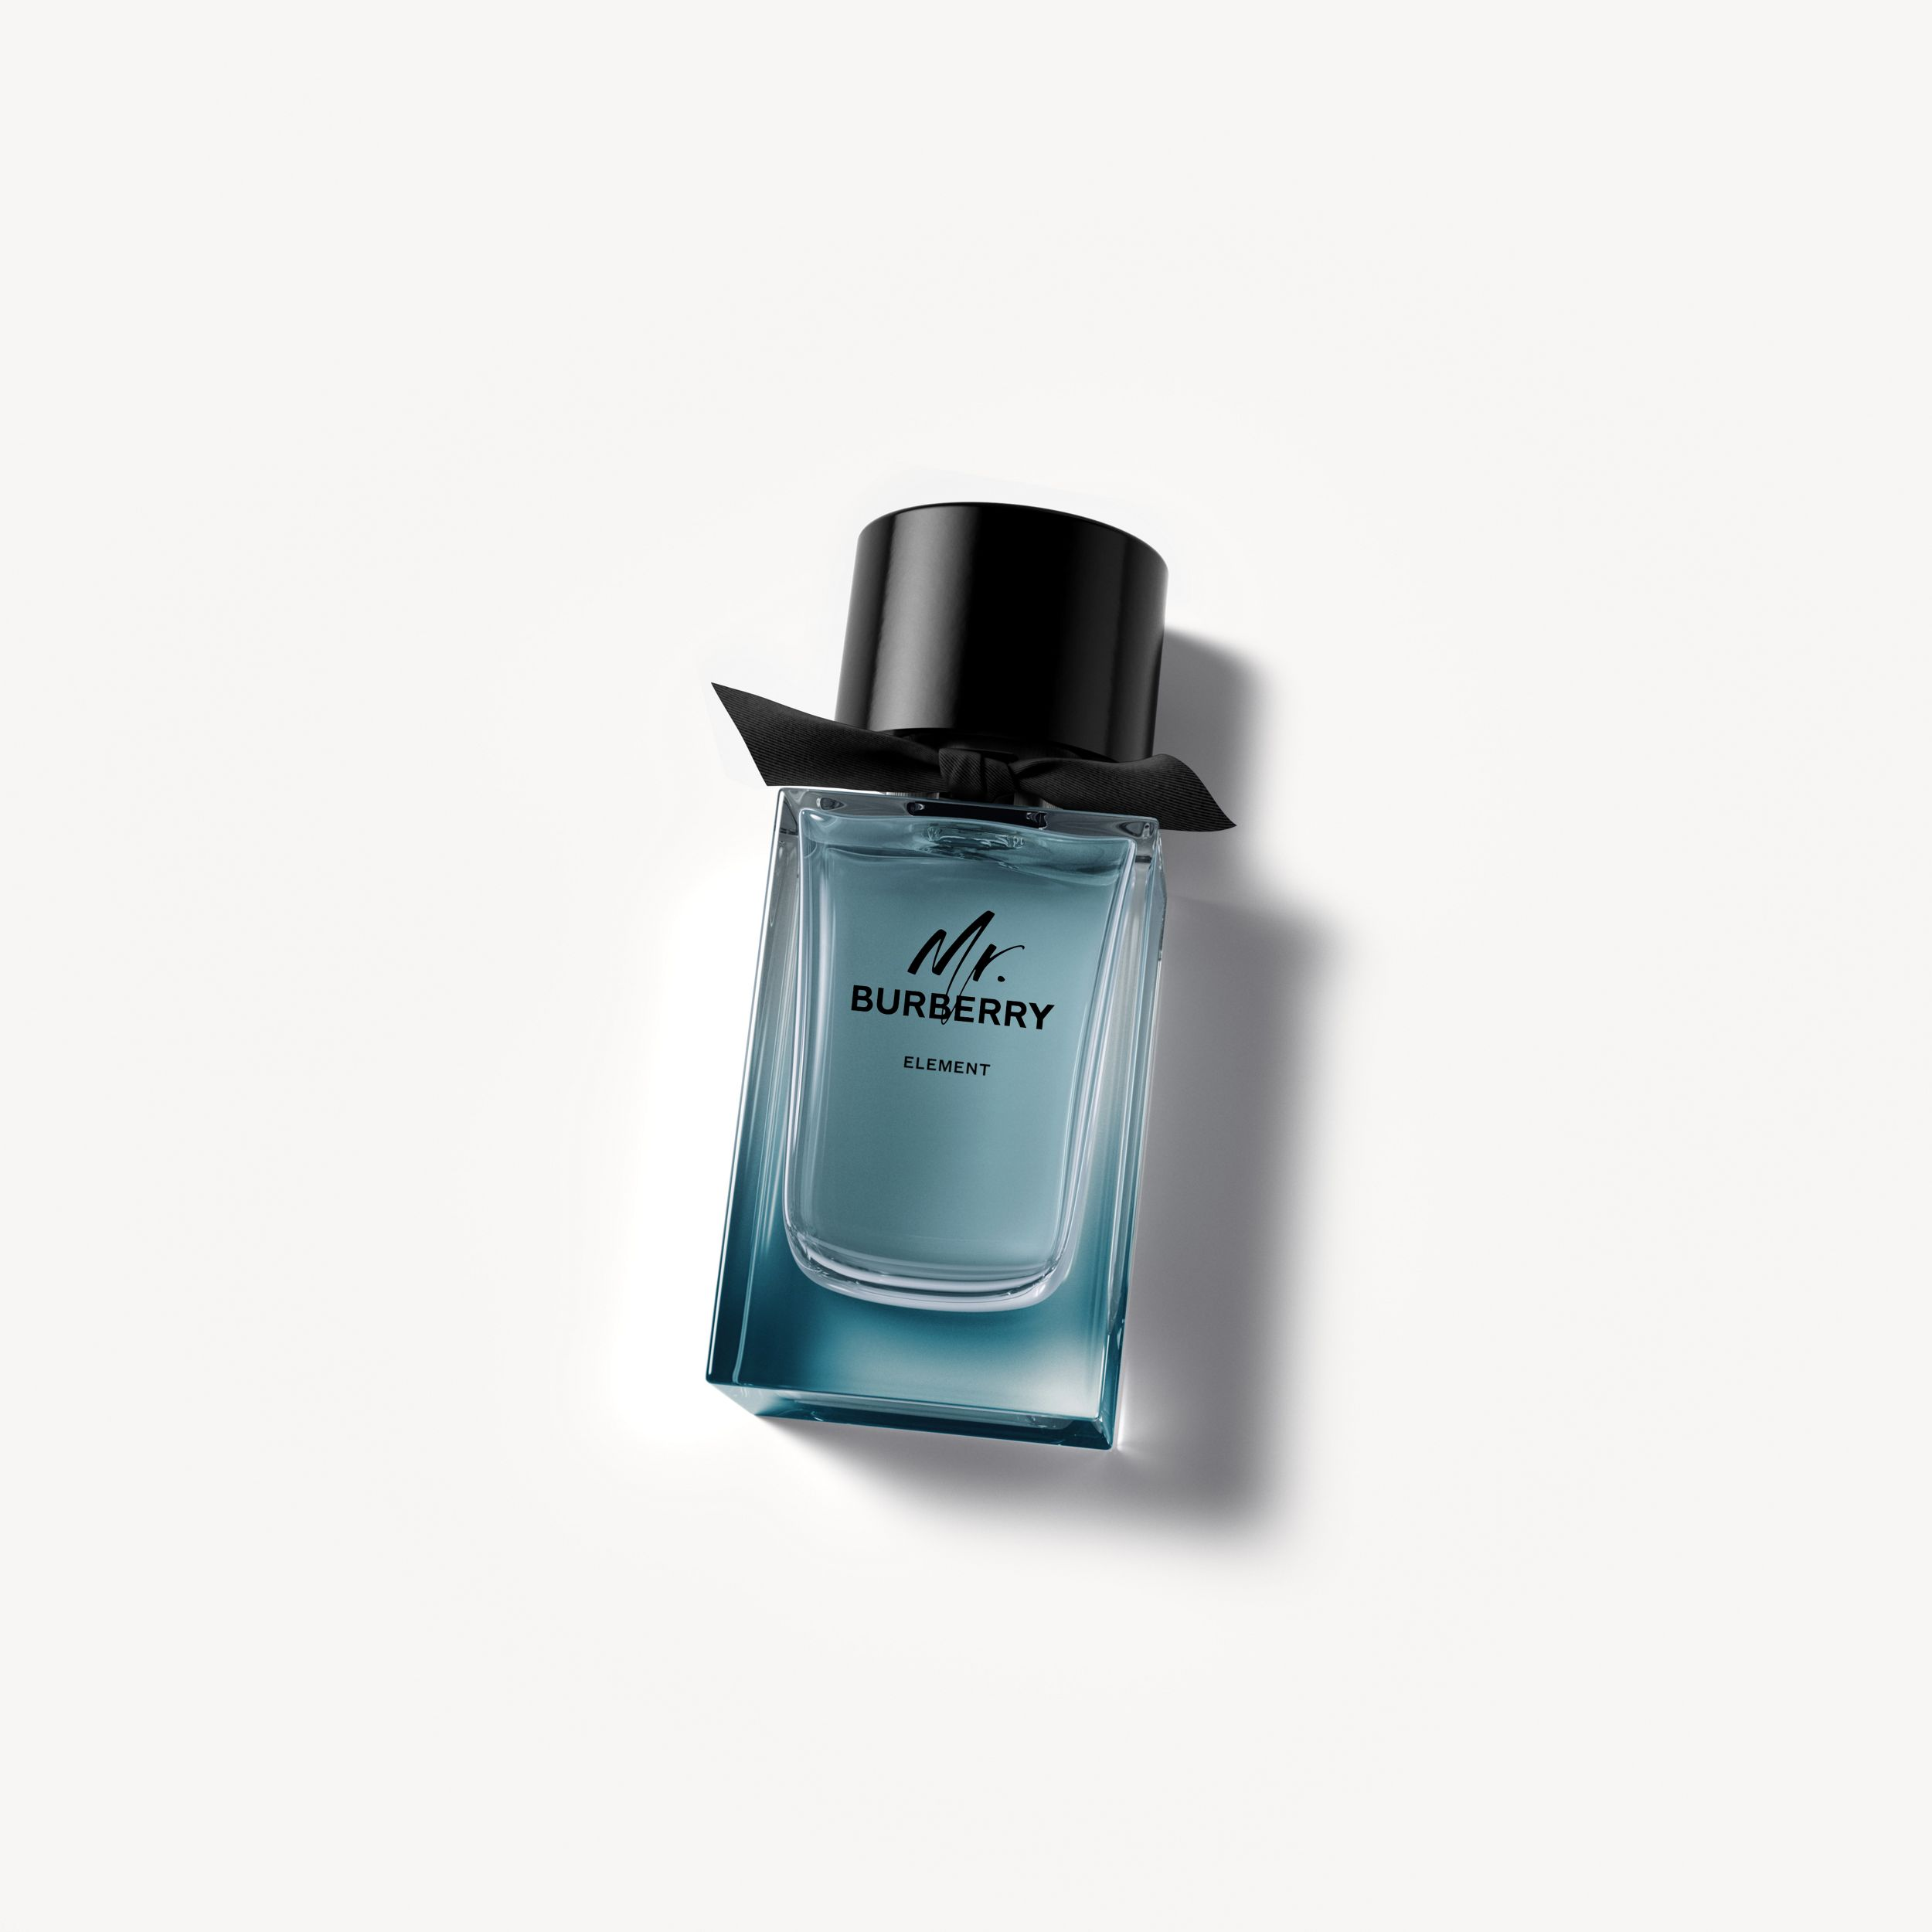 Mr. Burberry Element Eau de Toilette 100ml - Men | Burberry - 1